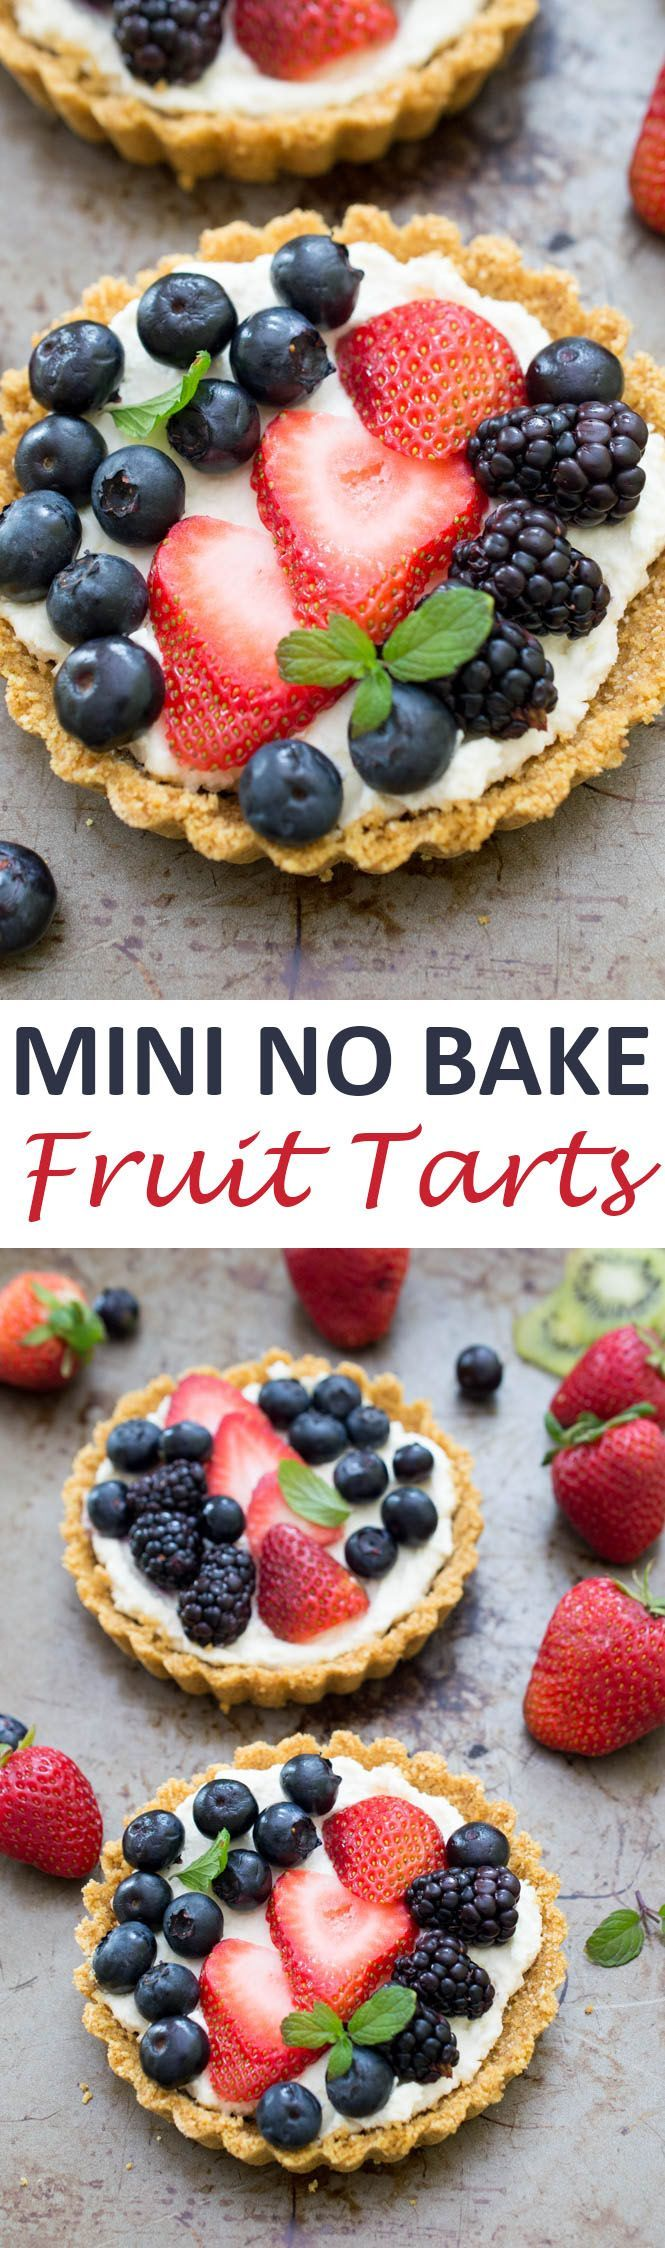 No Bake Mascarpone Fruit Tarts made with a homemade graham cracker crust and layered with fresh berries. A super colorful and easy make ahead dessert!